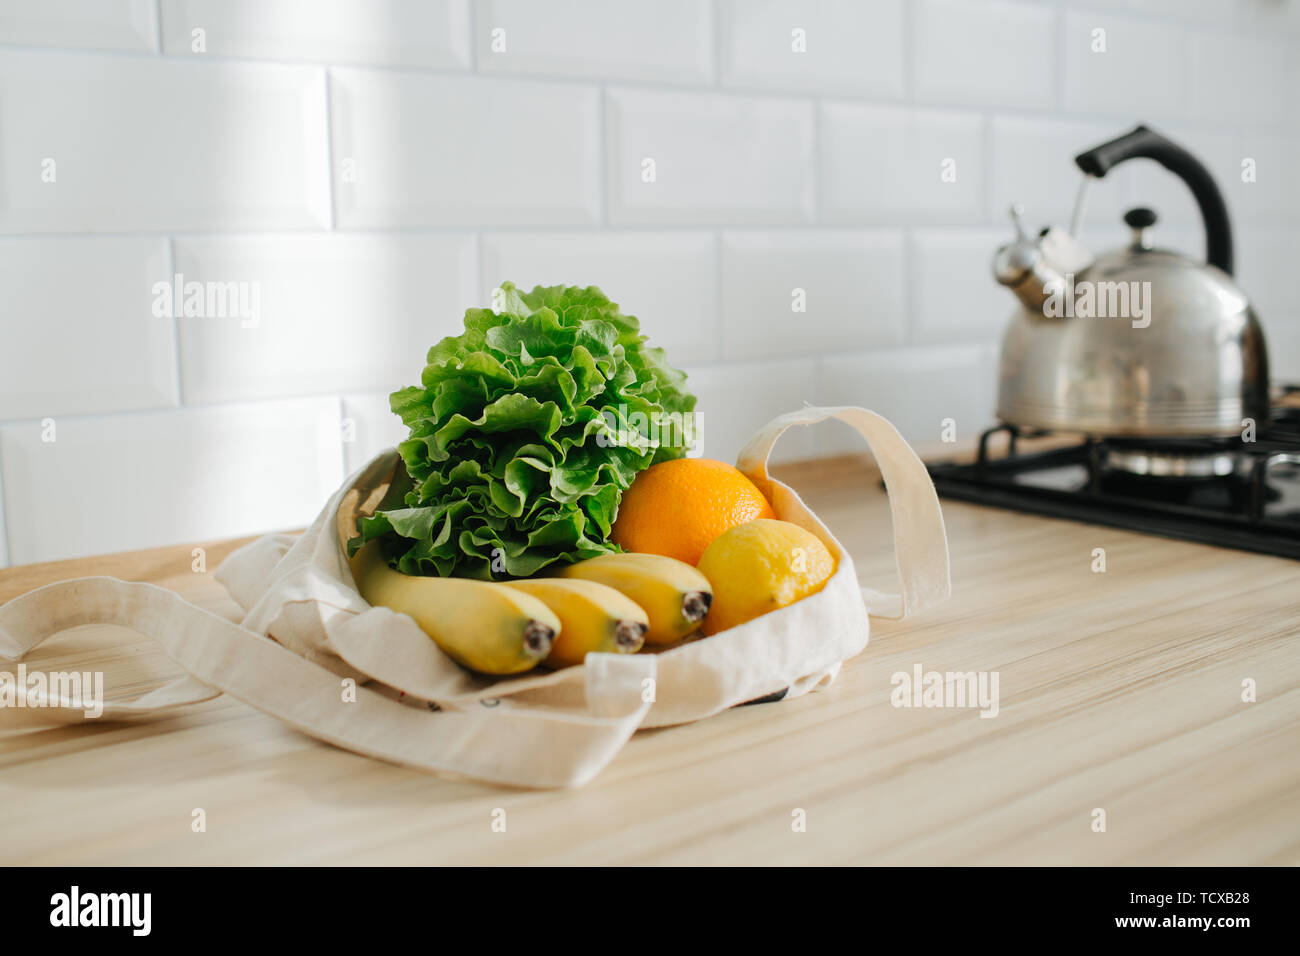 Lettuce, lemon, banana and orange in a white cotton bag in the sunny kitchen, lying on the table. - Stock Image